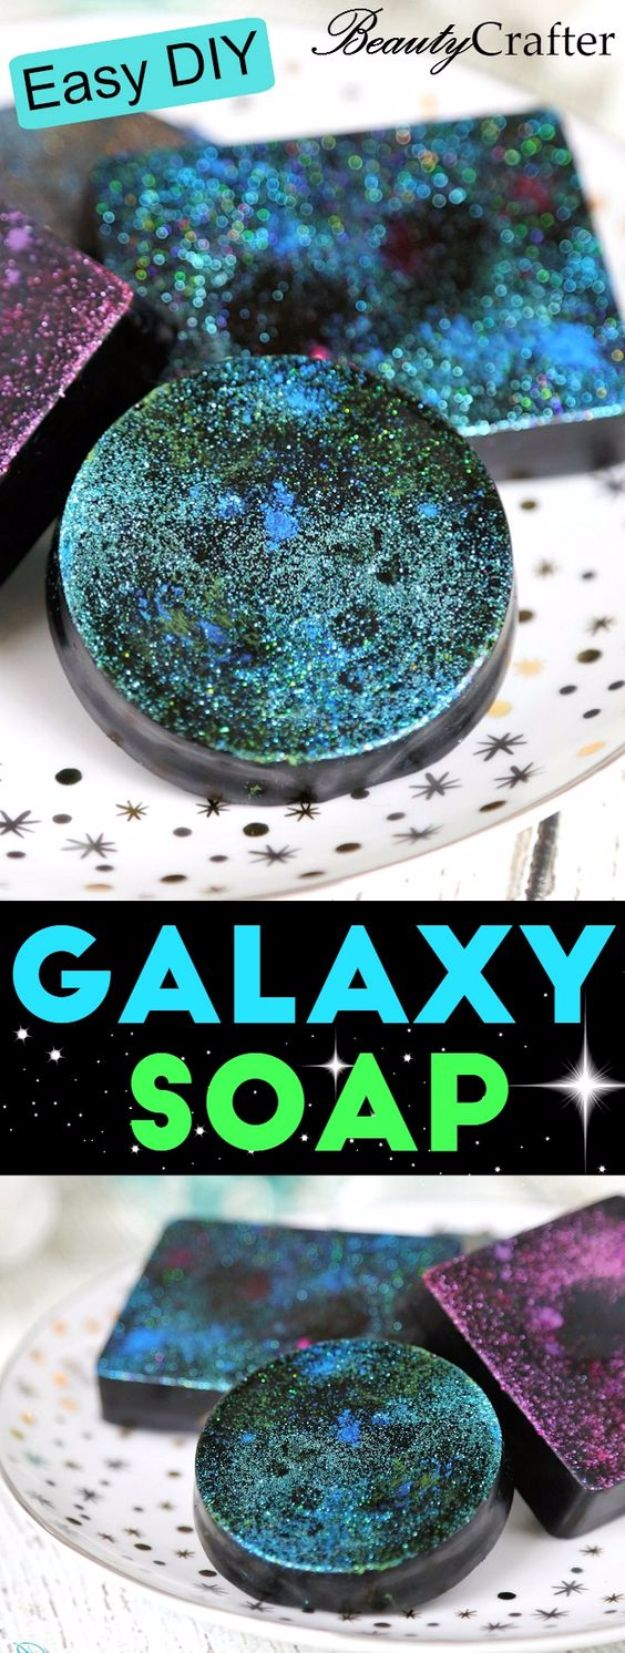 Galaxy DIY Crafts - DIY Galaxy Soap - Easy Room Decor, Cool Clothes, Fun Fabric Ideas and Painting Projects - Food, Cookies and Cupcake Recipes - Nebula Galaxy In A Jar - Art for Your Bedroom - Shirt, Backpack, Soap, Decorations for Teens, Kids and Adults http://diyprojectsforteens.com/galaxy-crafts